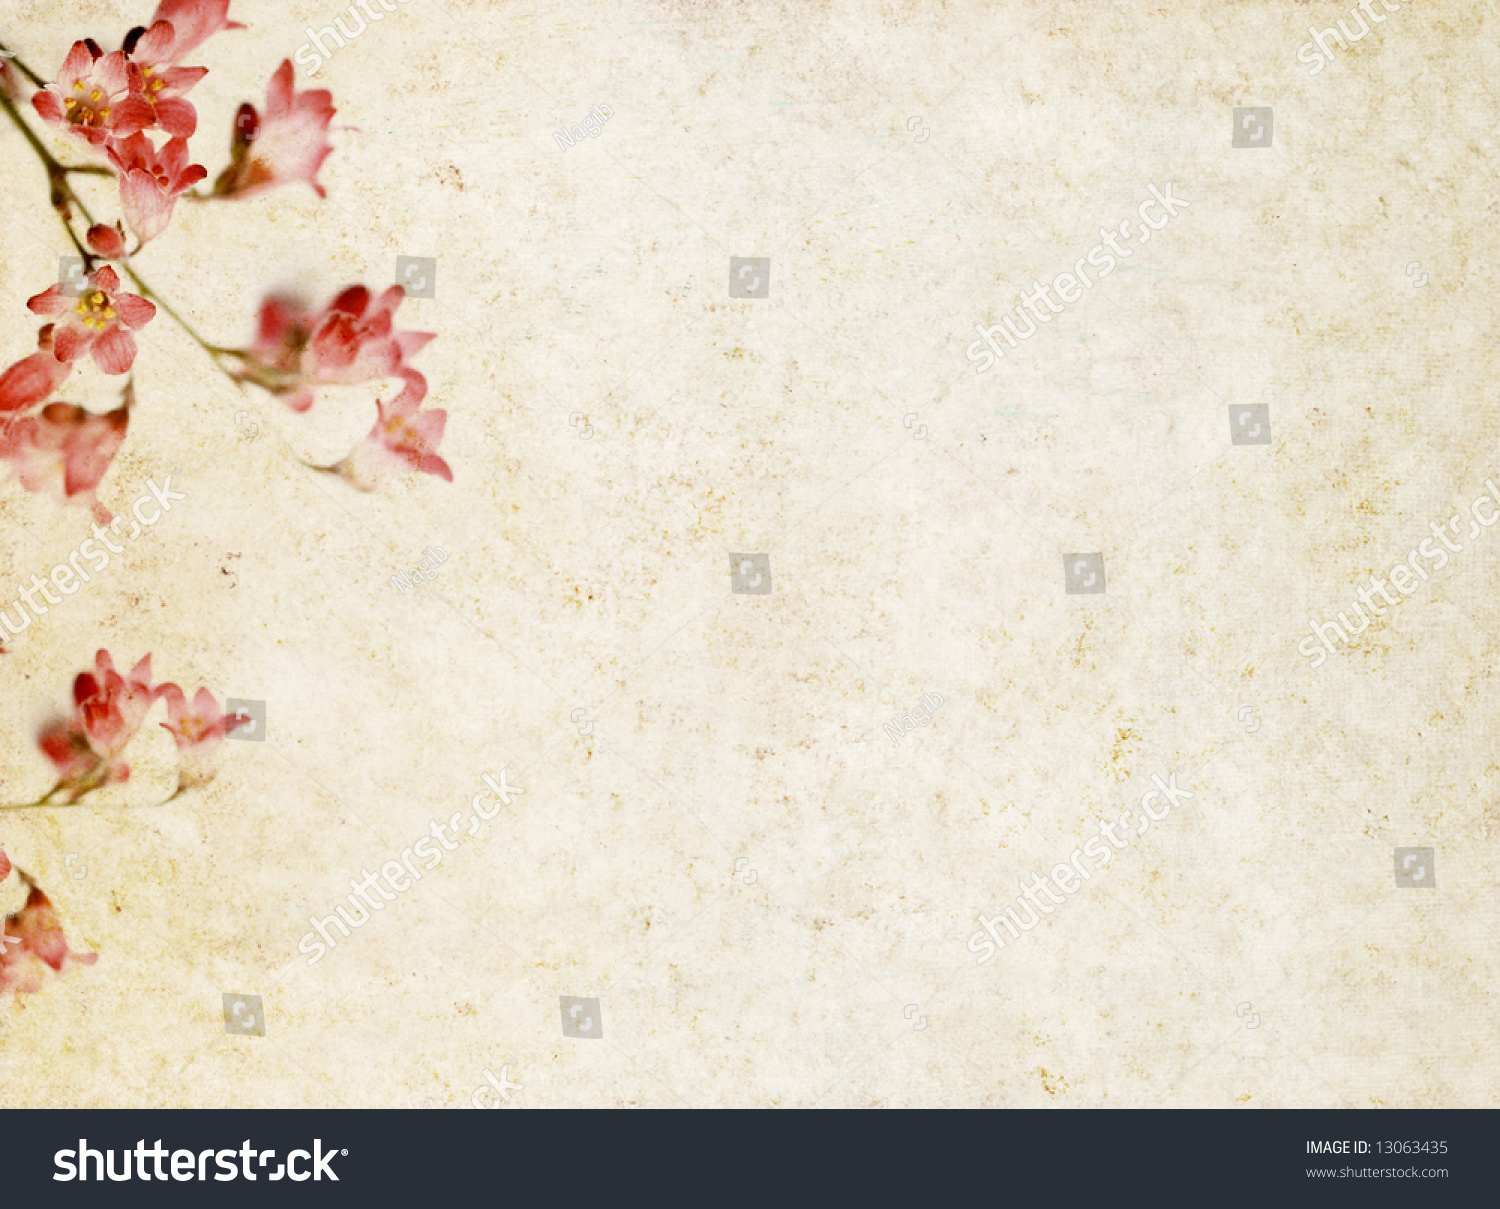 Light Brown Background Image With Interesting Texture, Red ... - photo#25